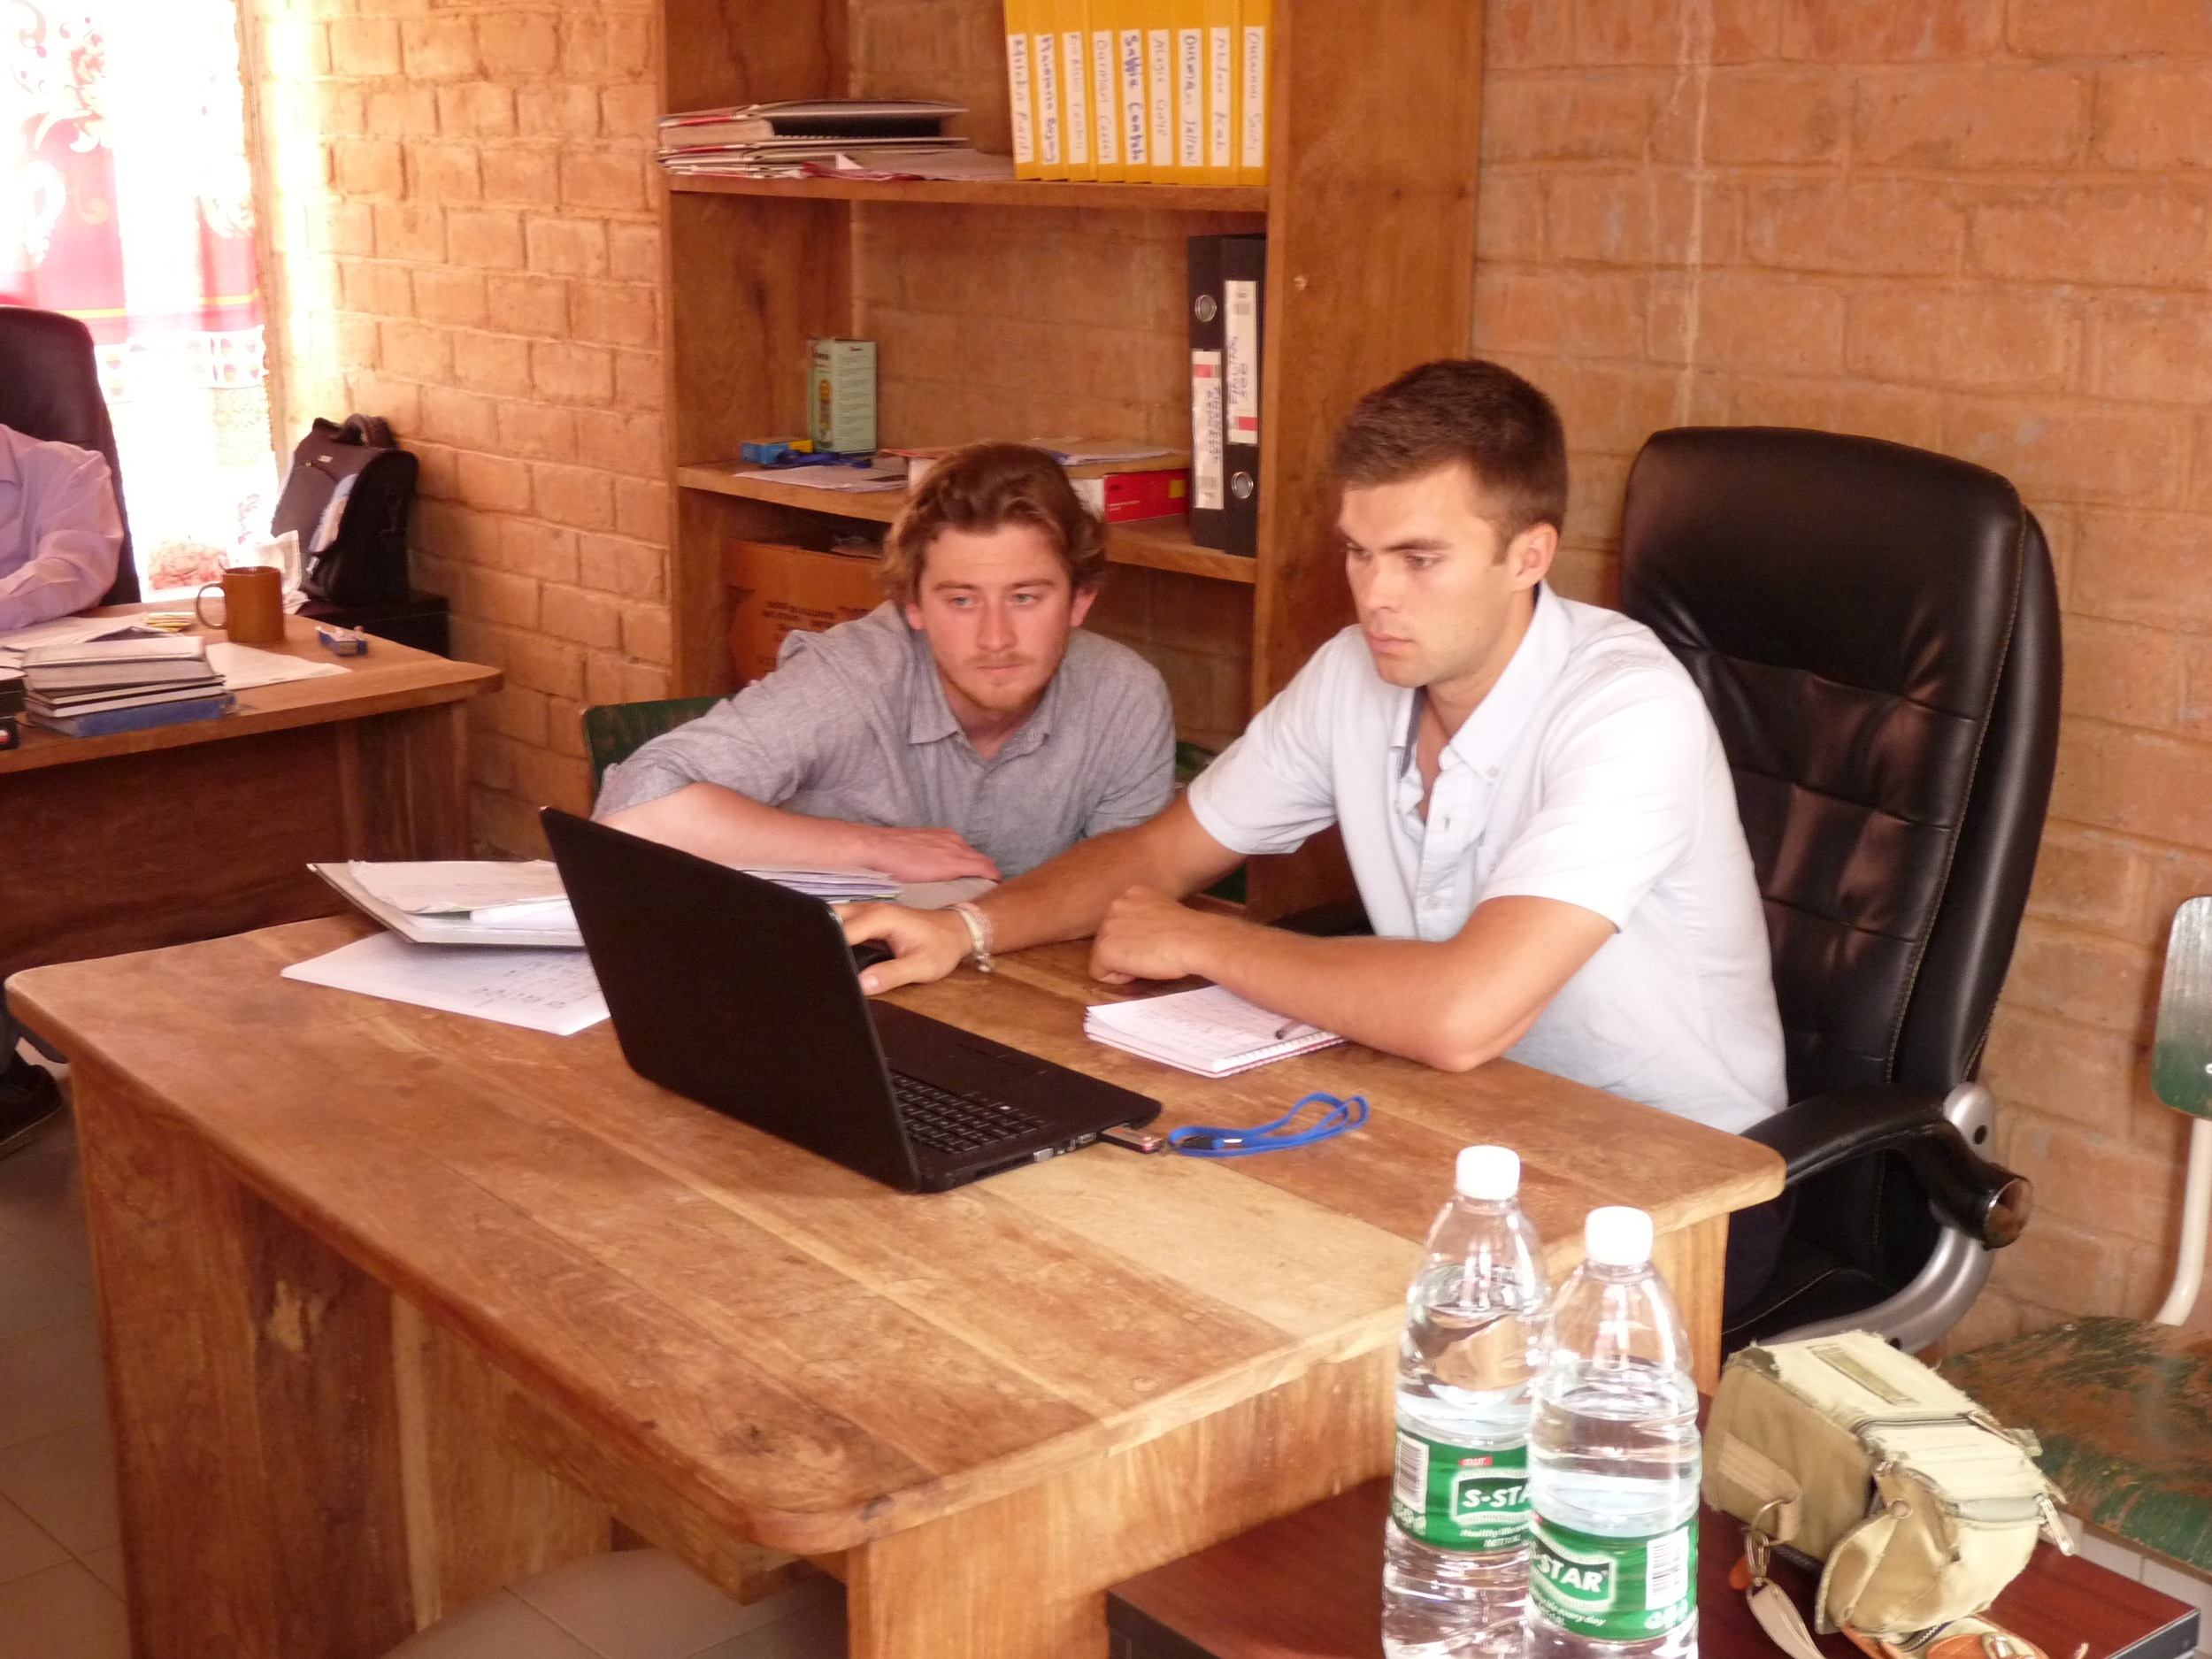 Mike and Tom working in The Gambia